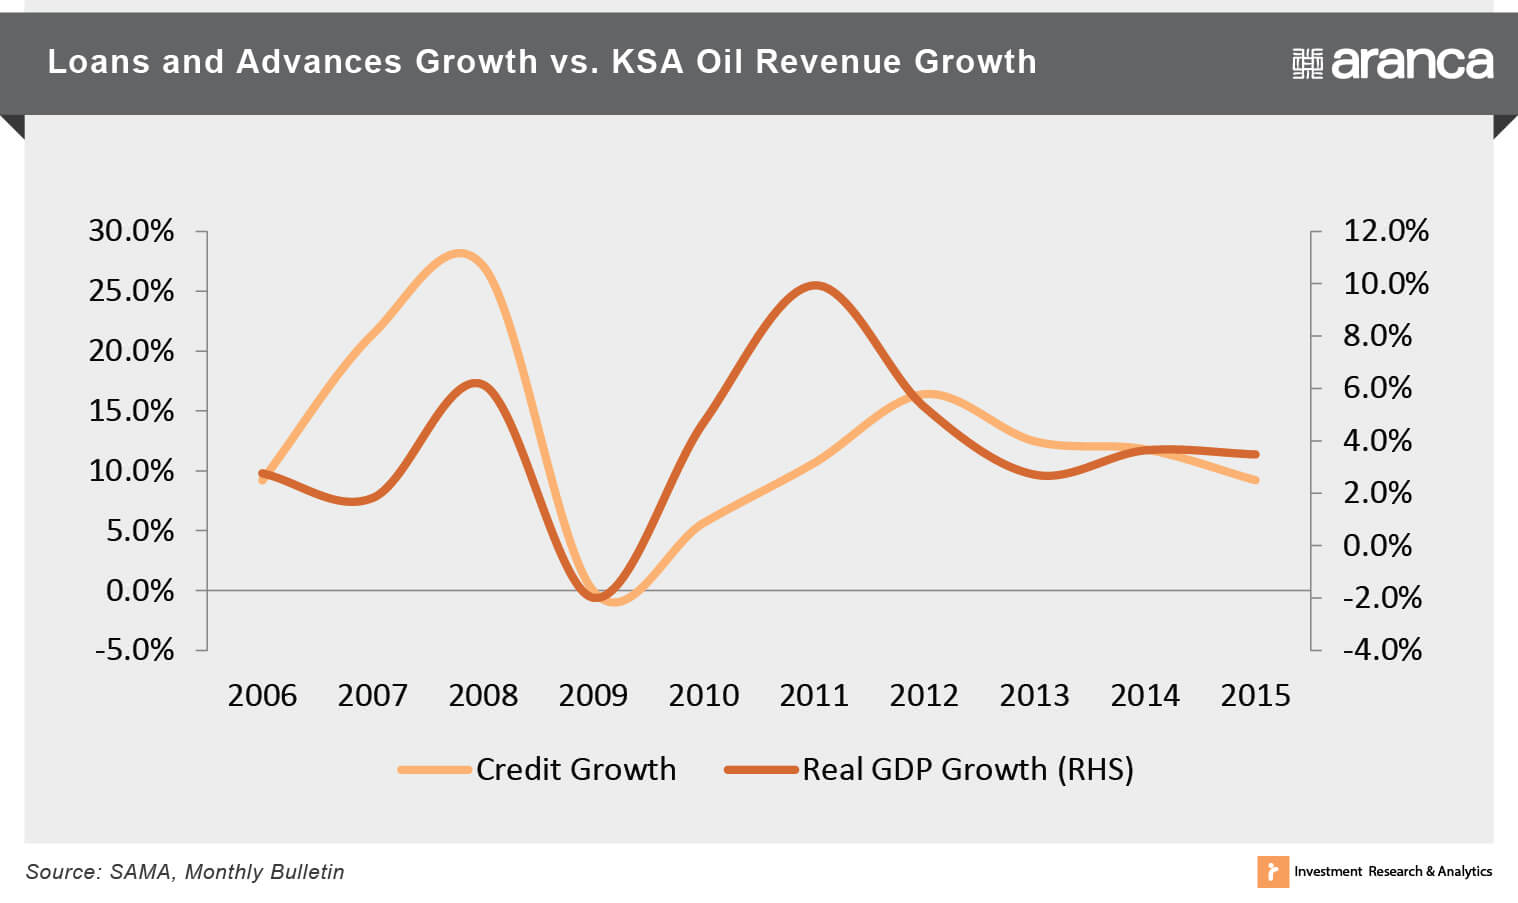 Loans and Advances Growth vs. KSA Oil Revenue Growth